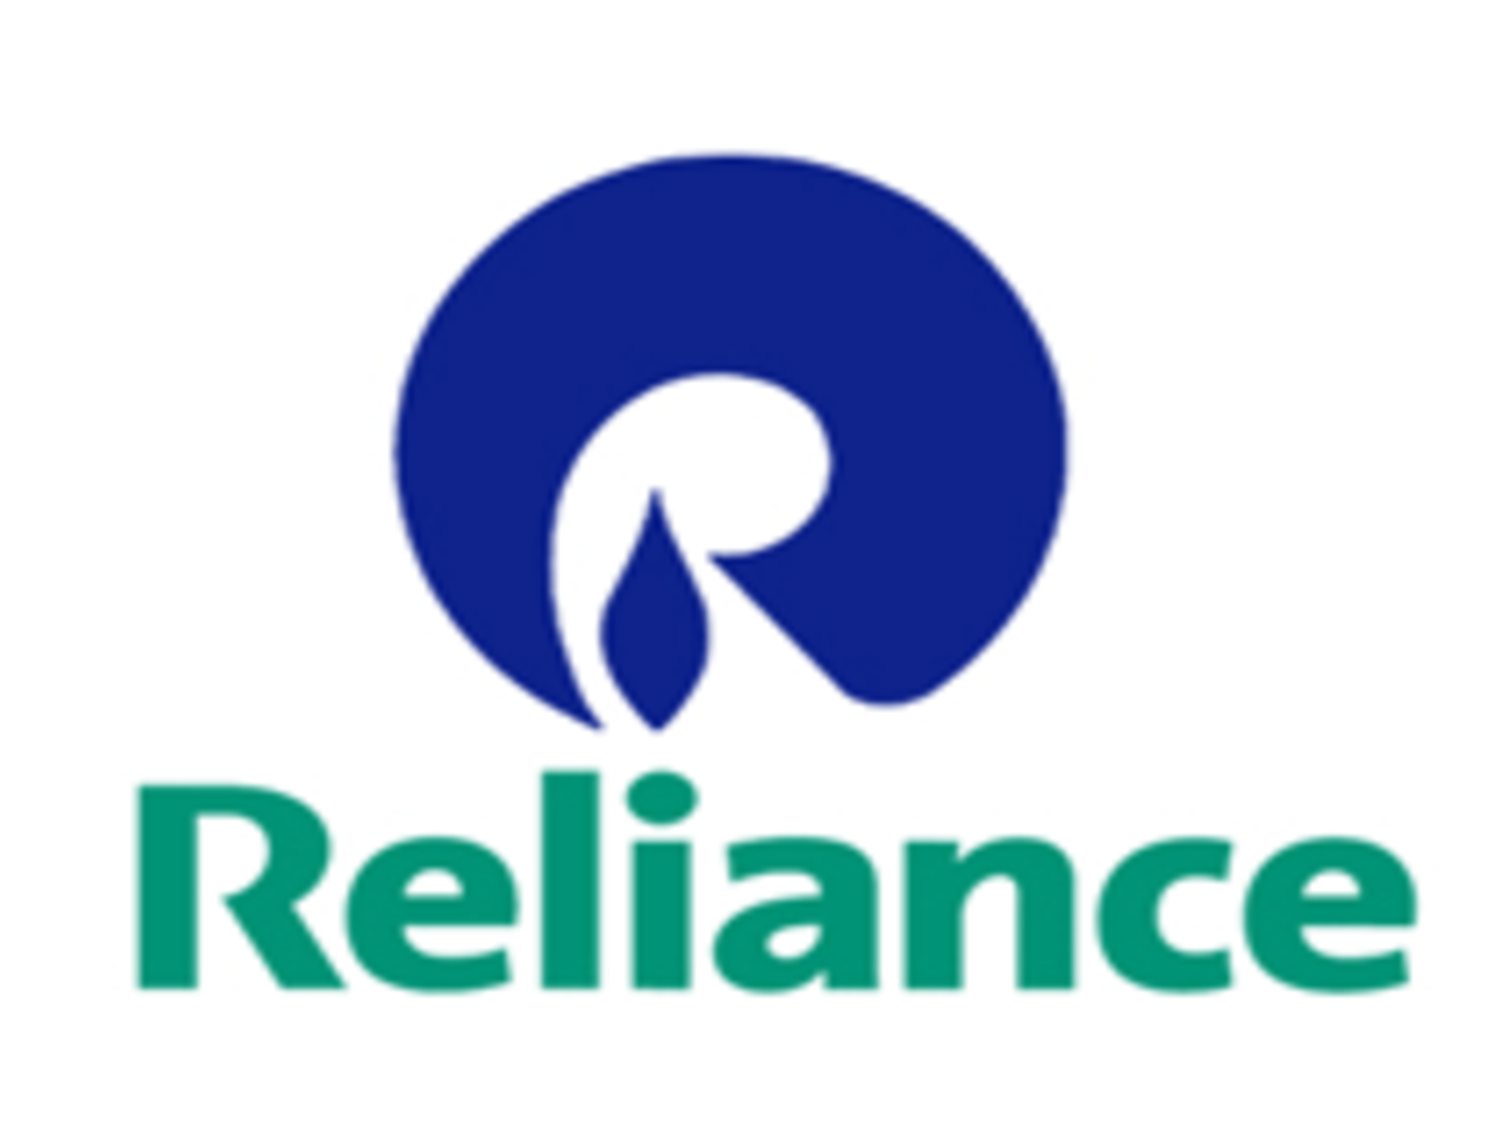 reliance industry 4 days ago a free inside look at reliance industries salary trends 965 salaries for 285 jobs at reliance industries salaries posted anonymously by reliance industries employees.